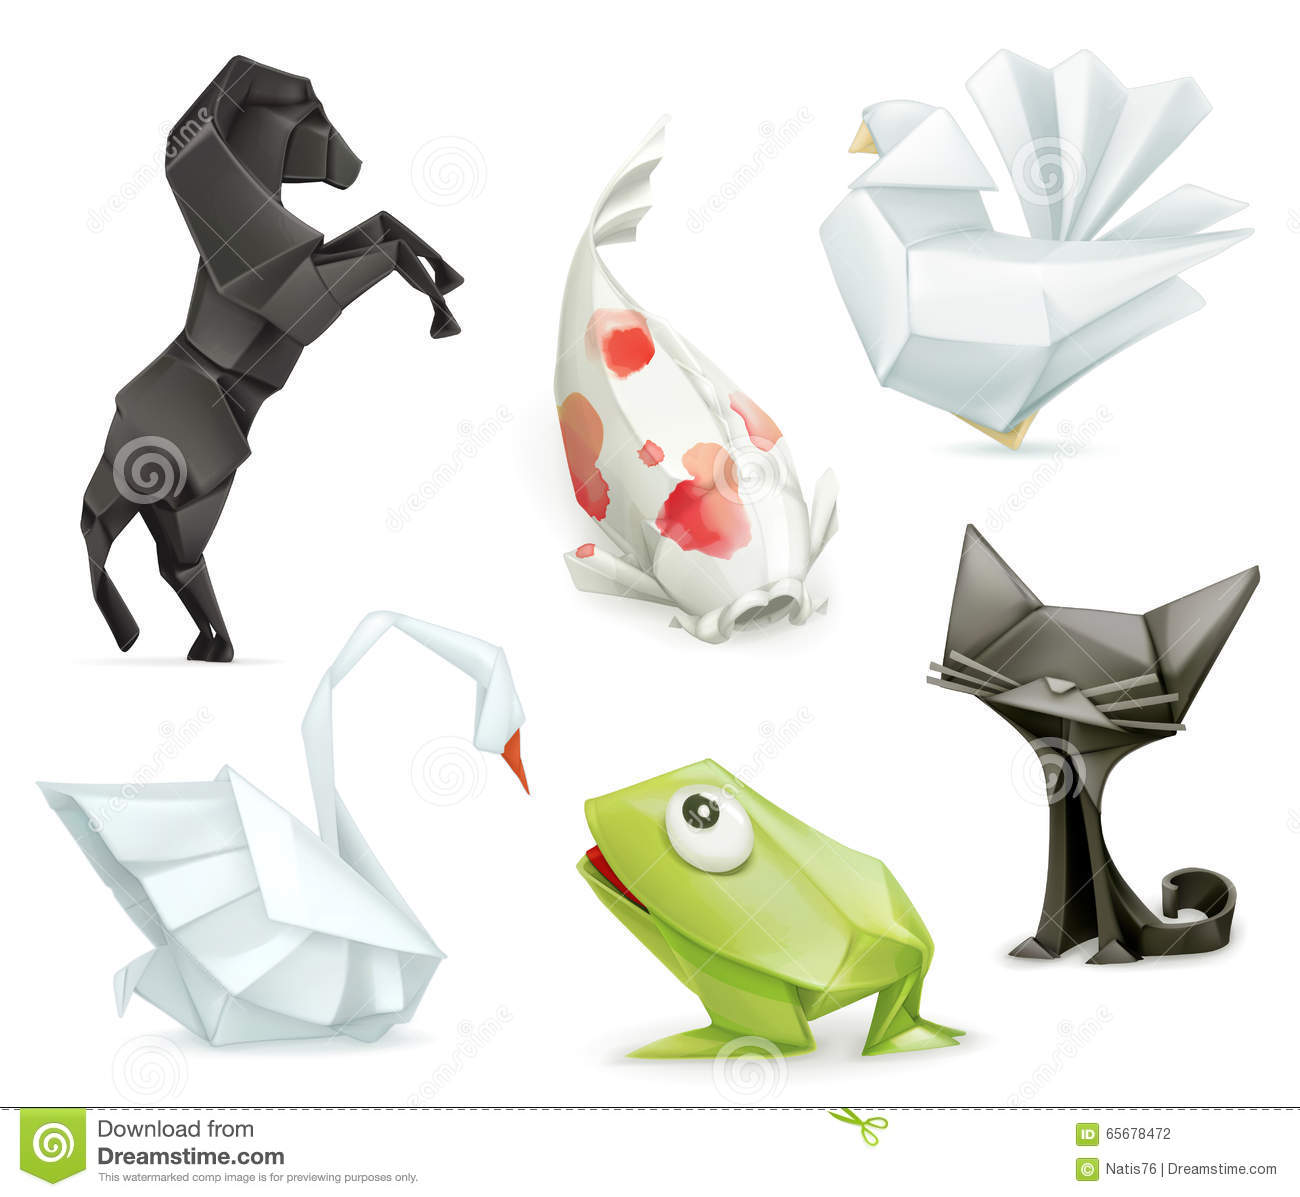 Origami vector animals icons